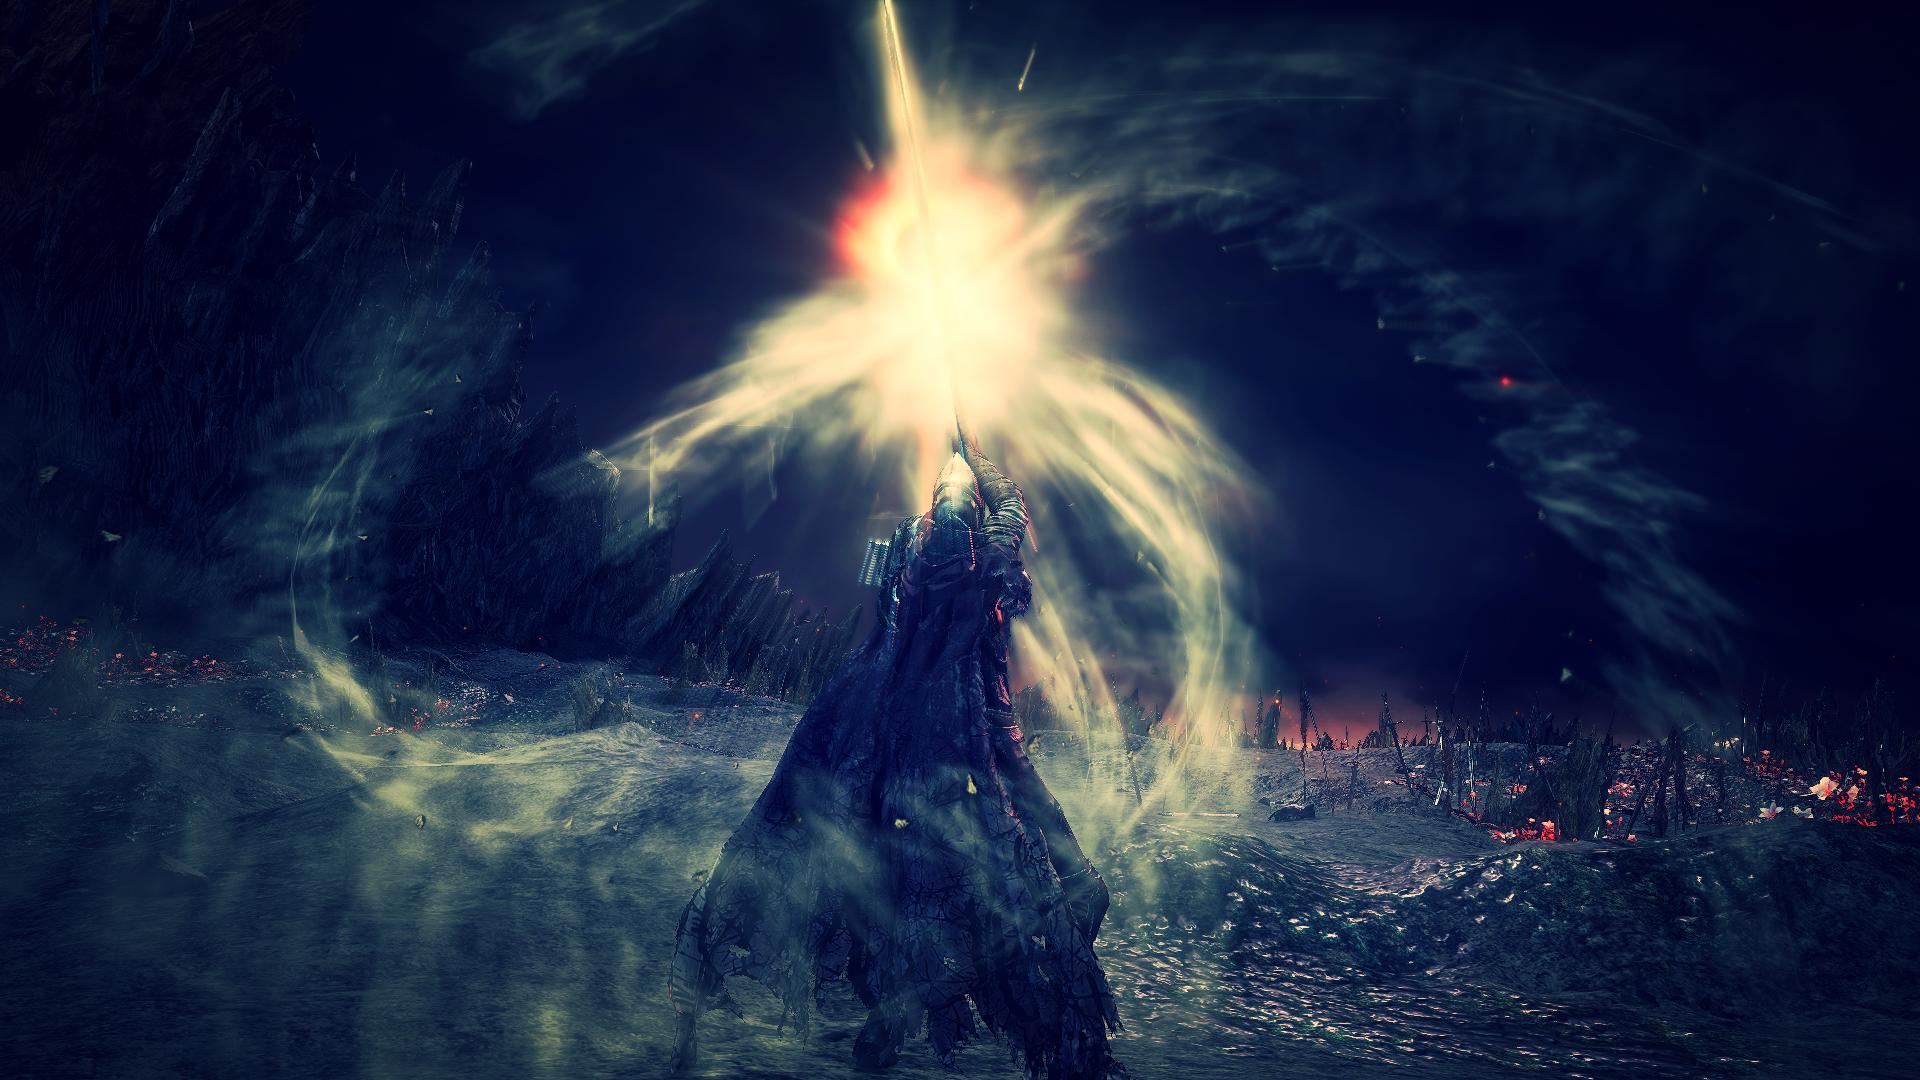 Dark Souls 3 Game Hd Games 4k Wallpapers Images Backgrounds Photos And Pictures